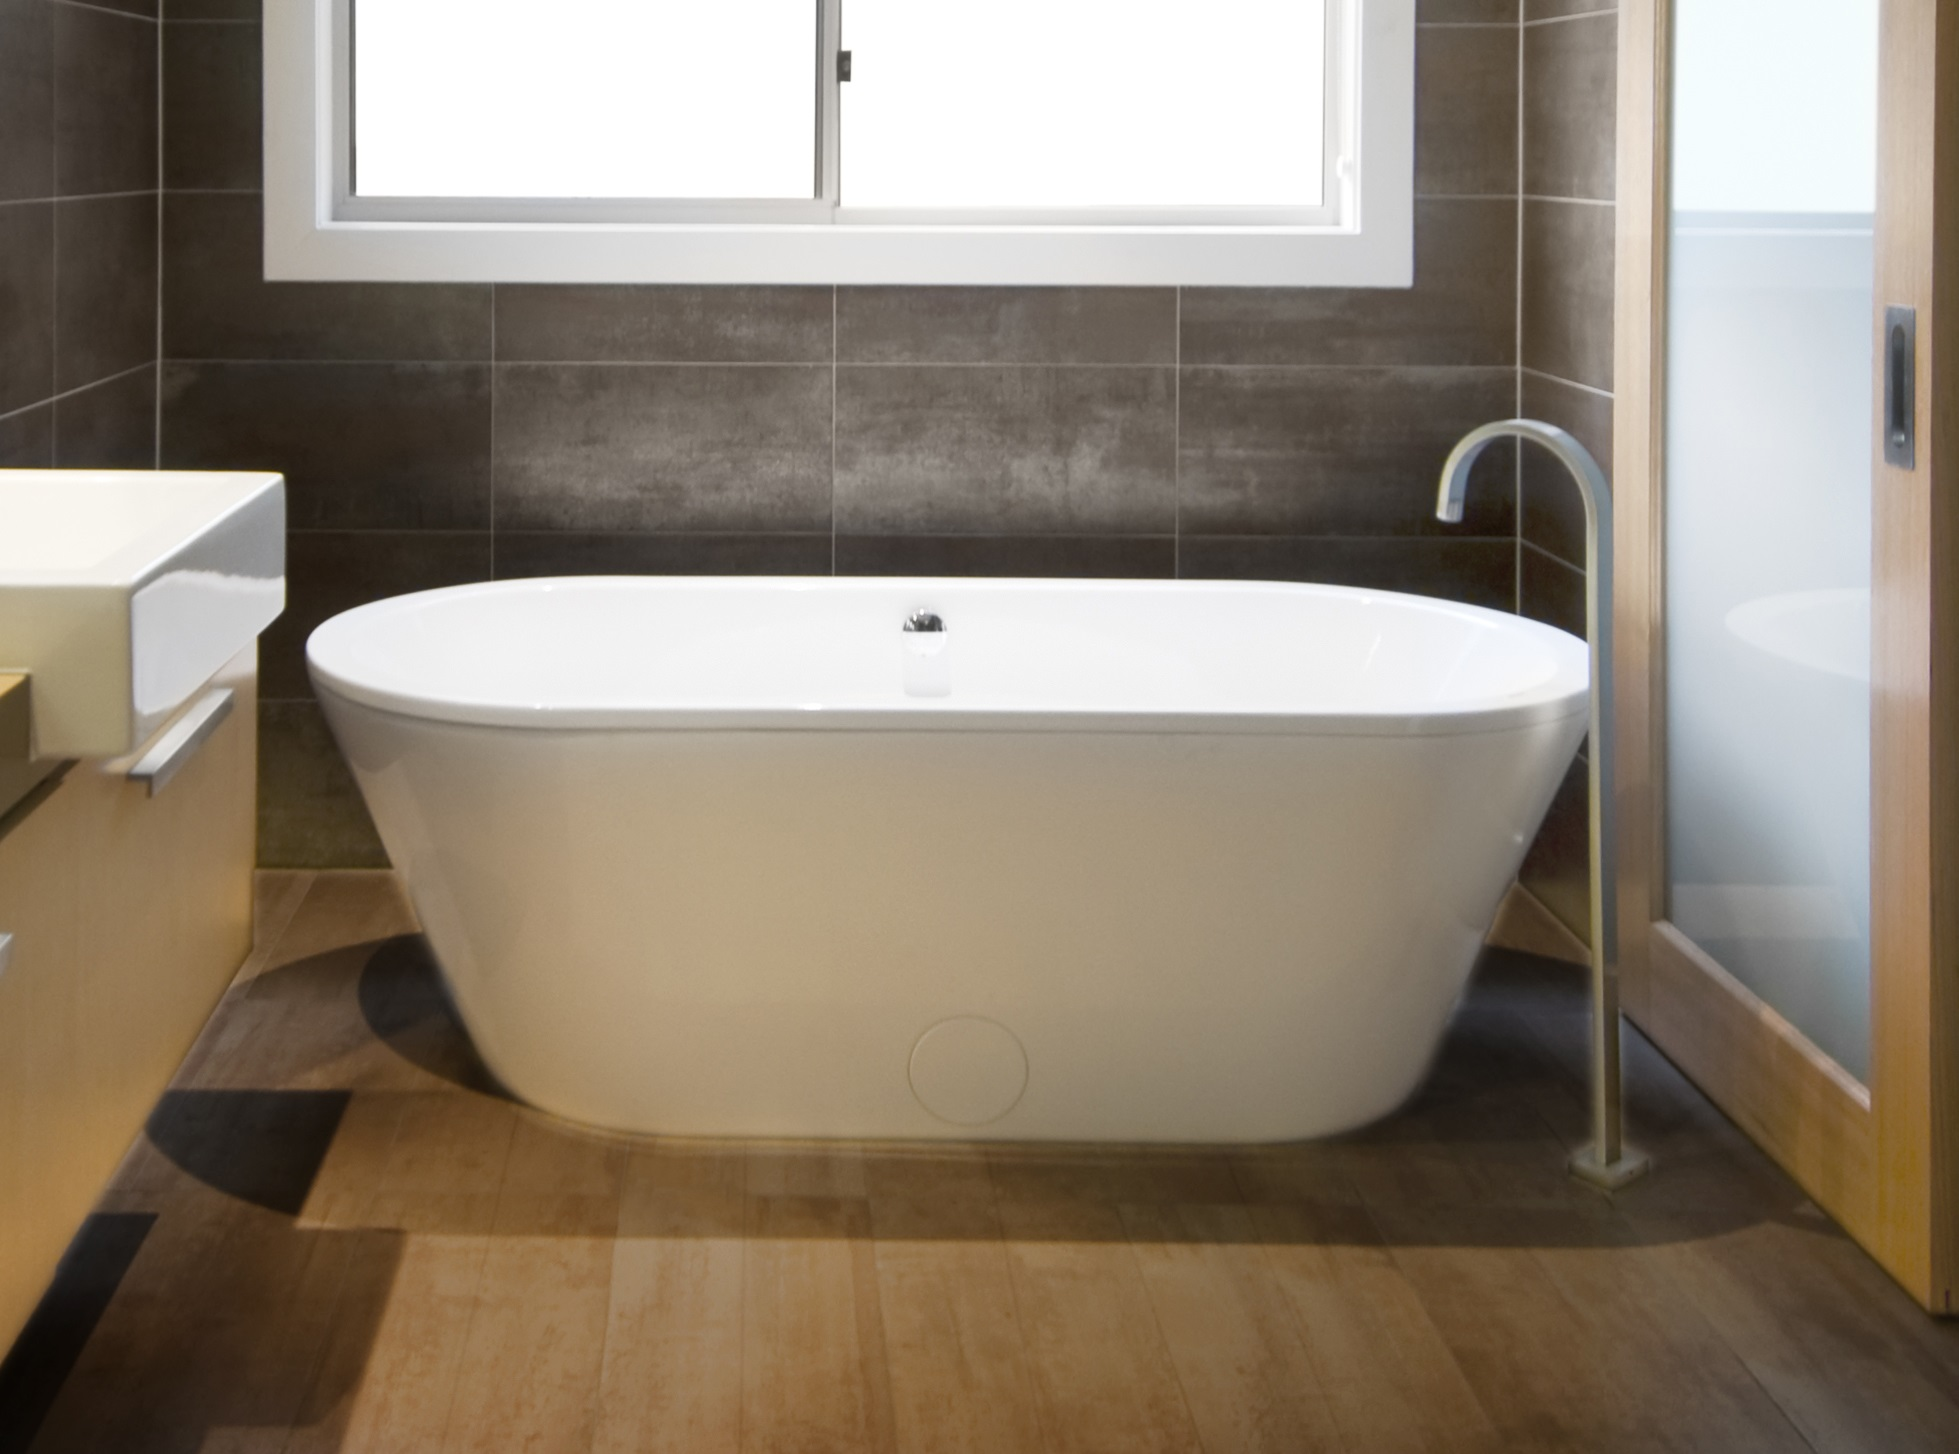 AquaPlank Mornington is suitable for bathrooms